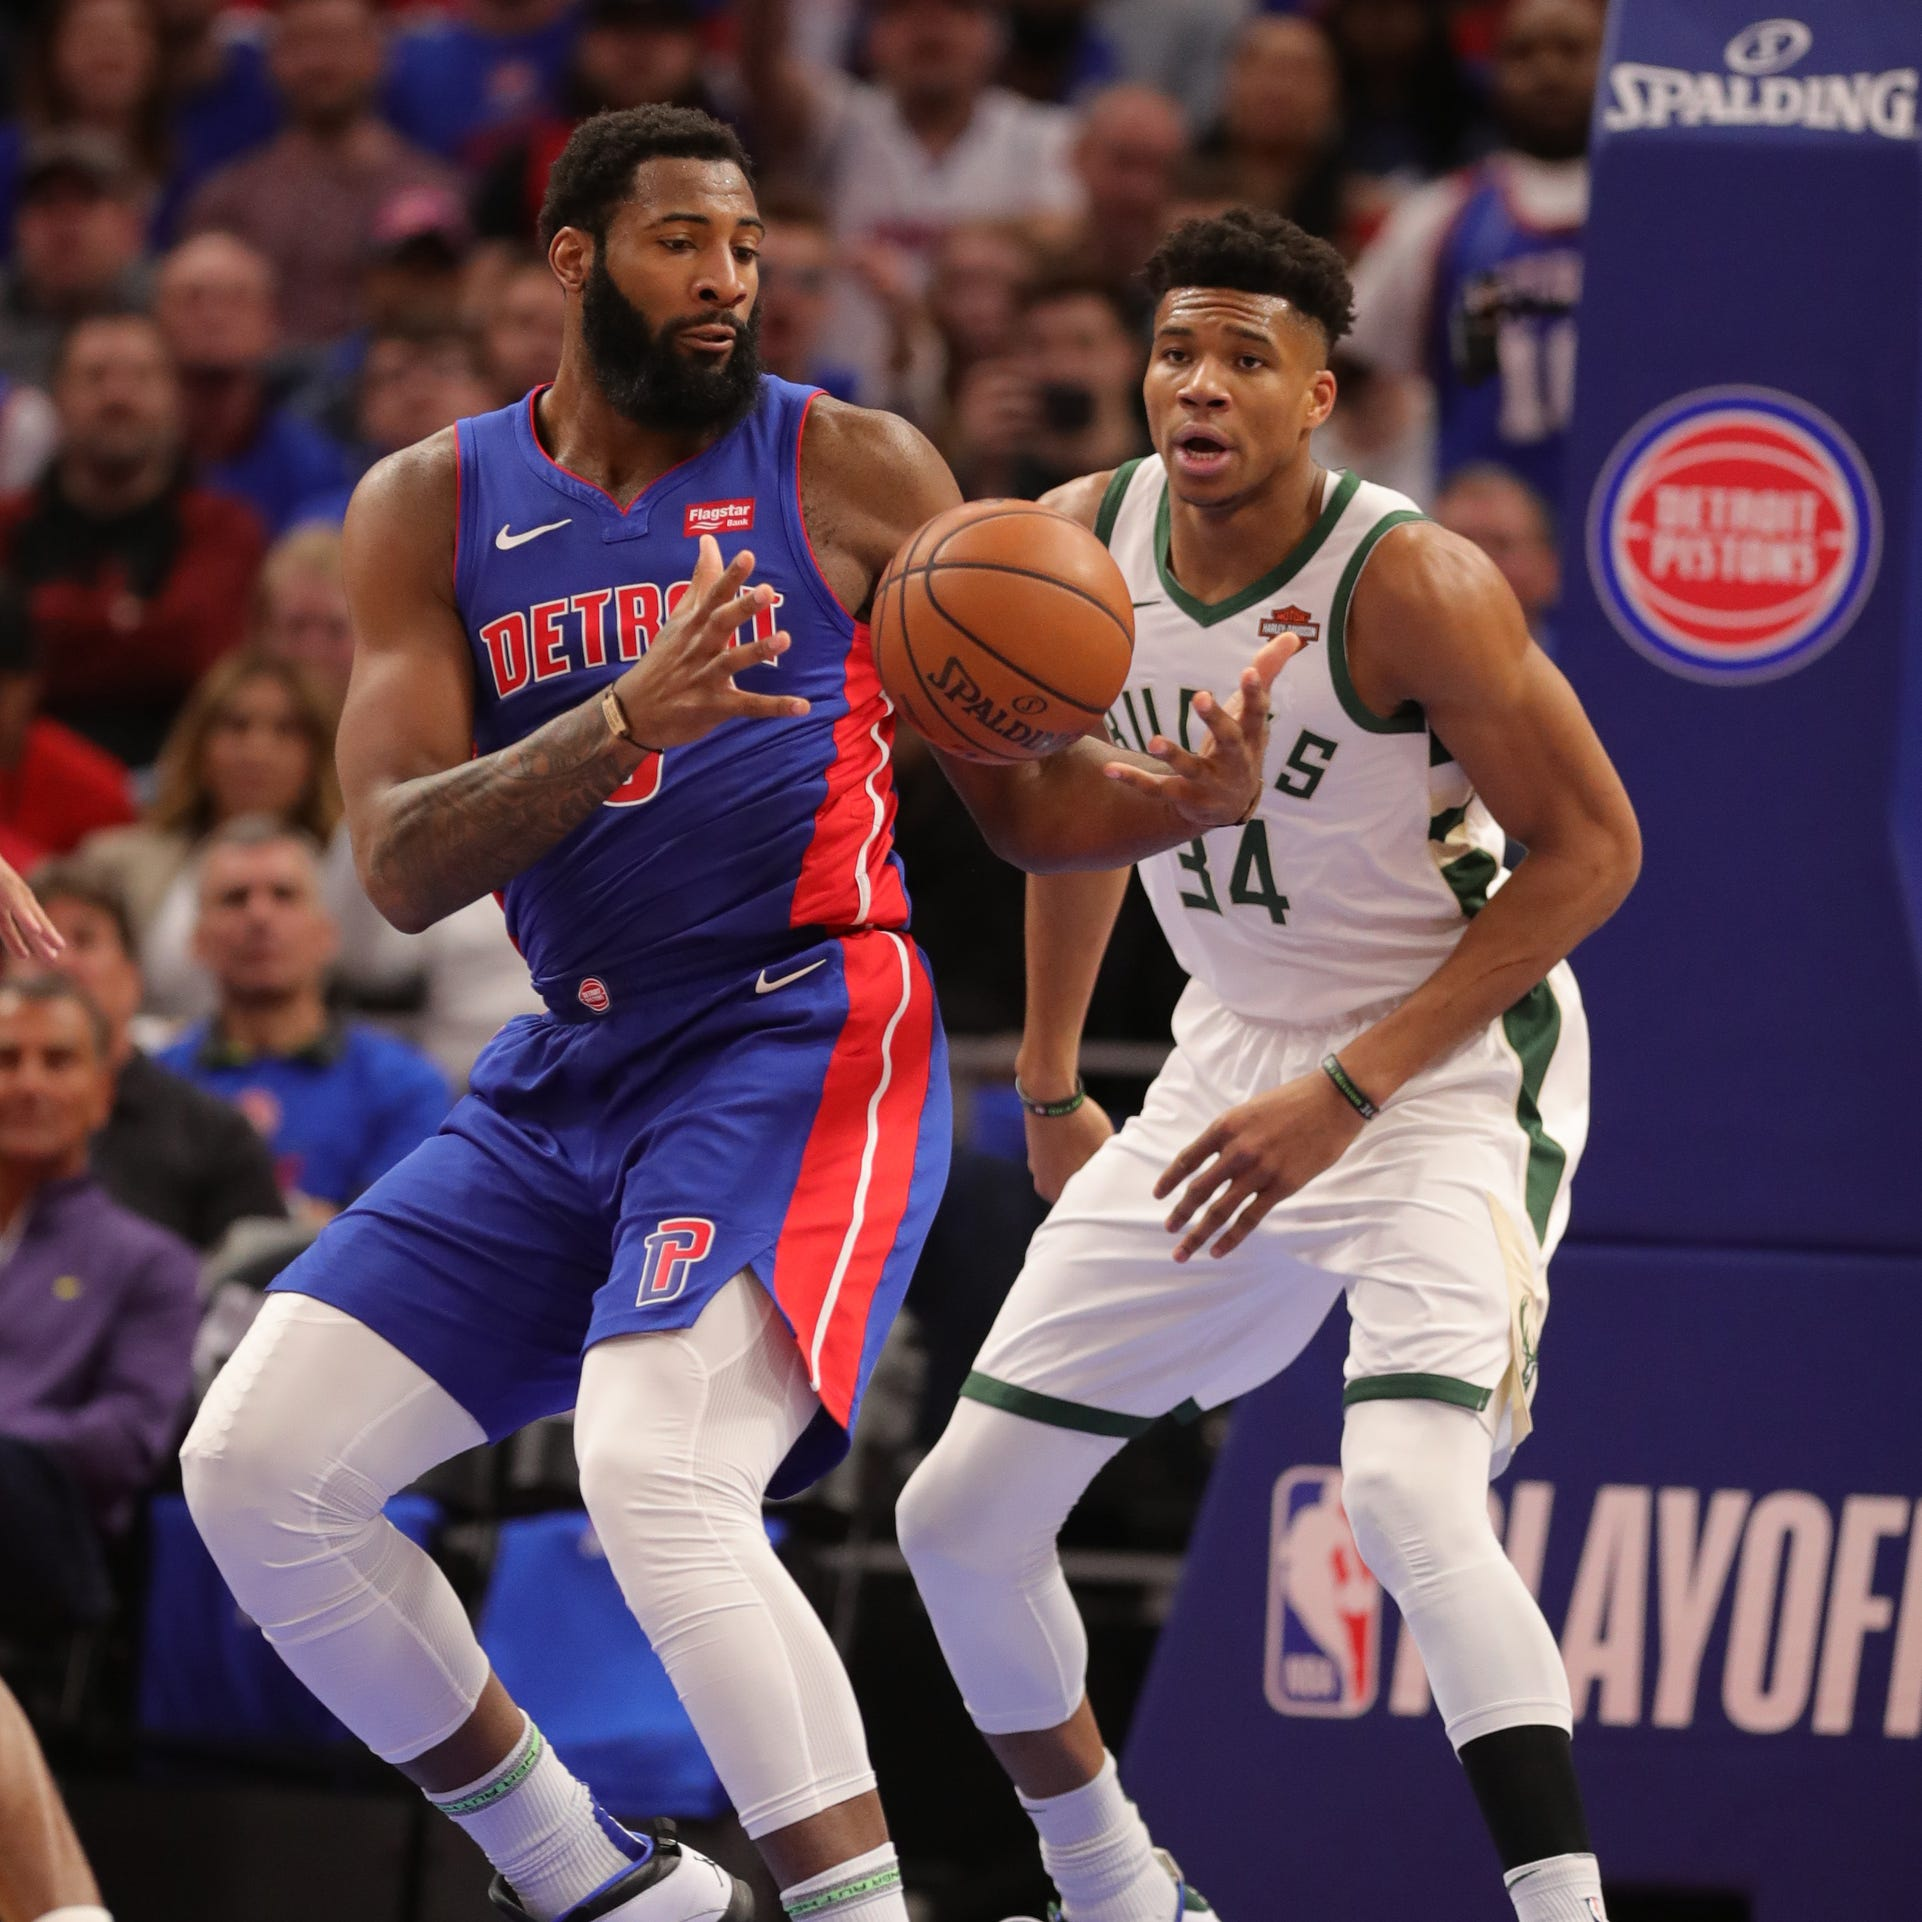 Andre Drummond booed by Pistons fans. Did he deserve it? It's complicated